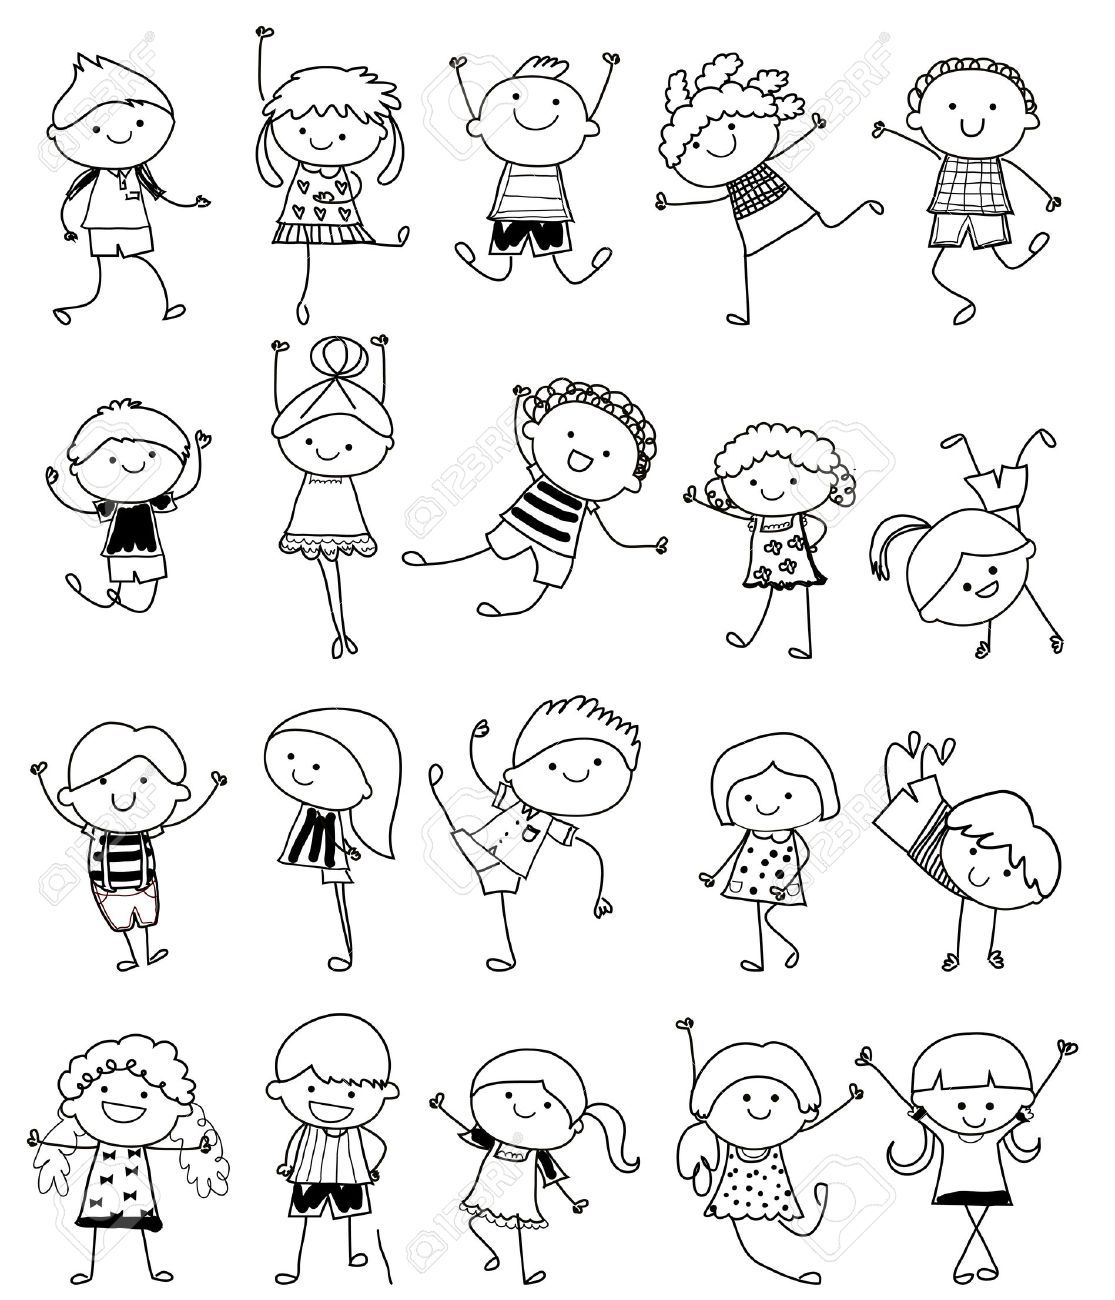 Croquis dessin groupe d 39 enfants illustrations cards - Dessin facile enfant ...